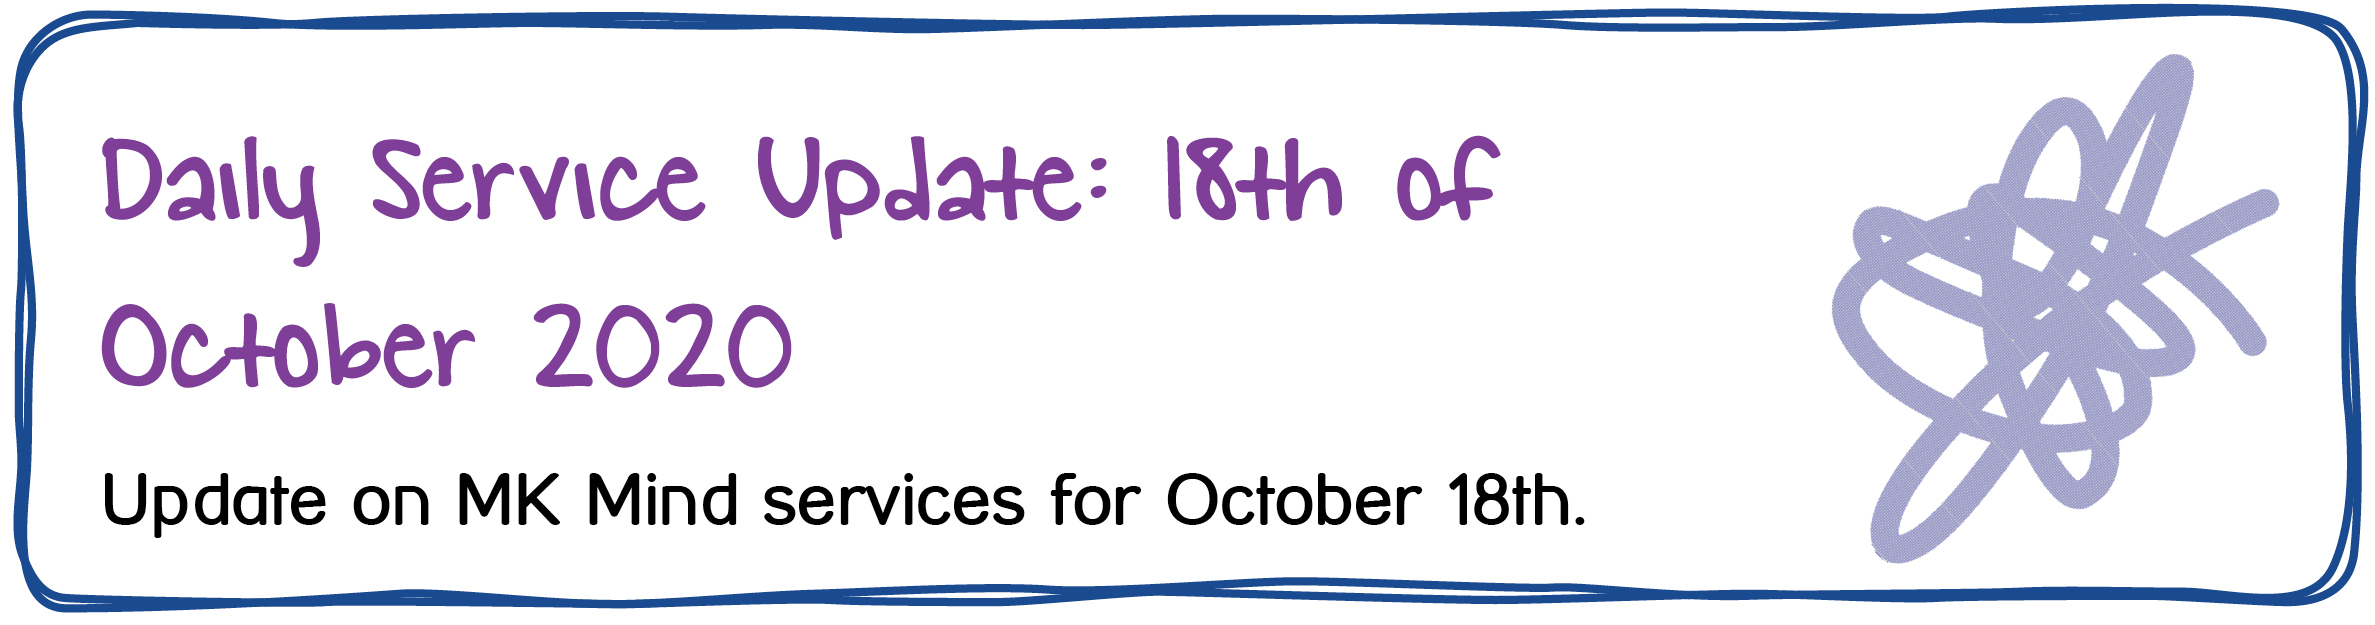 Daily Service Update: 18th of October 2020. Update on Mid-Kent Mind services for October 18th.